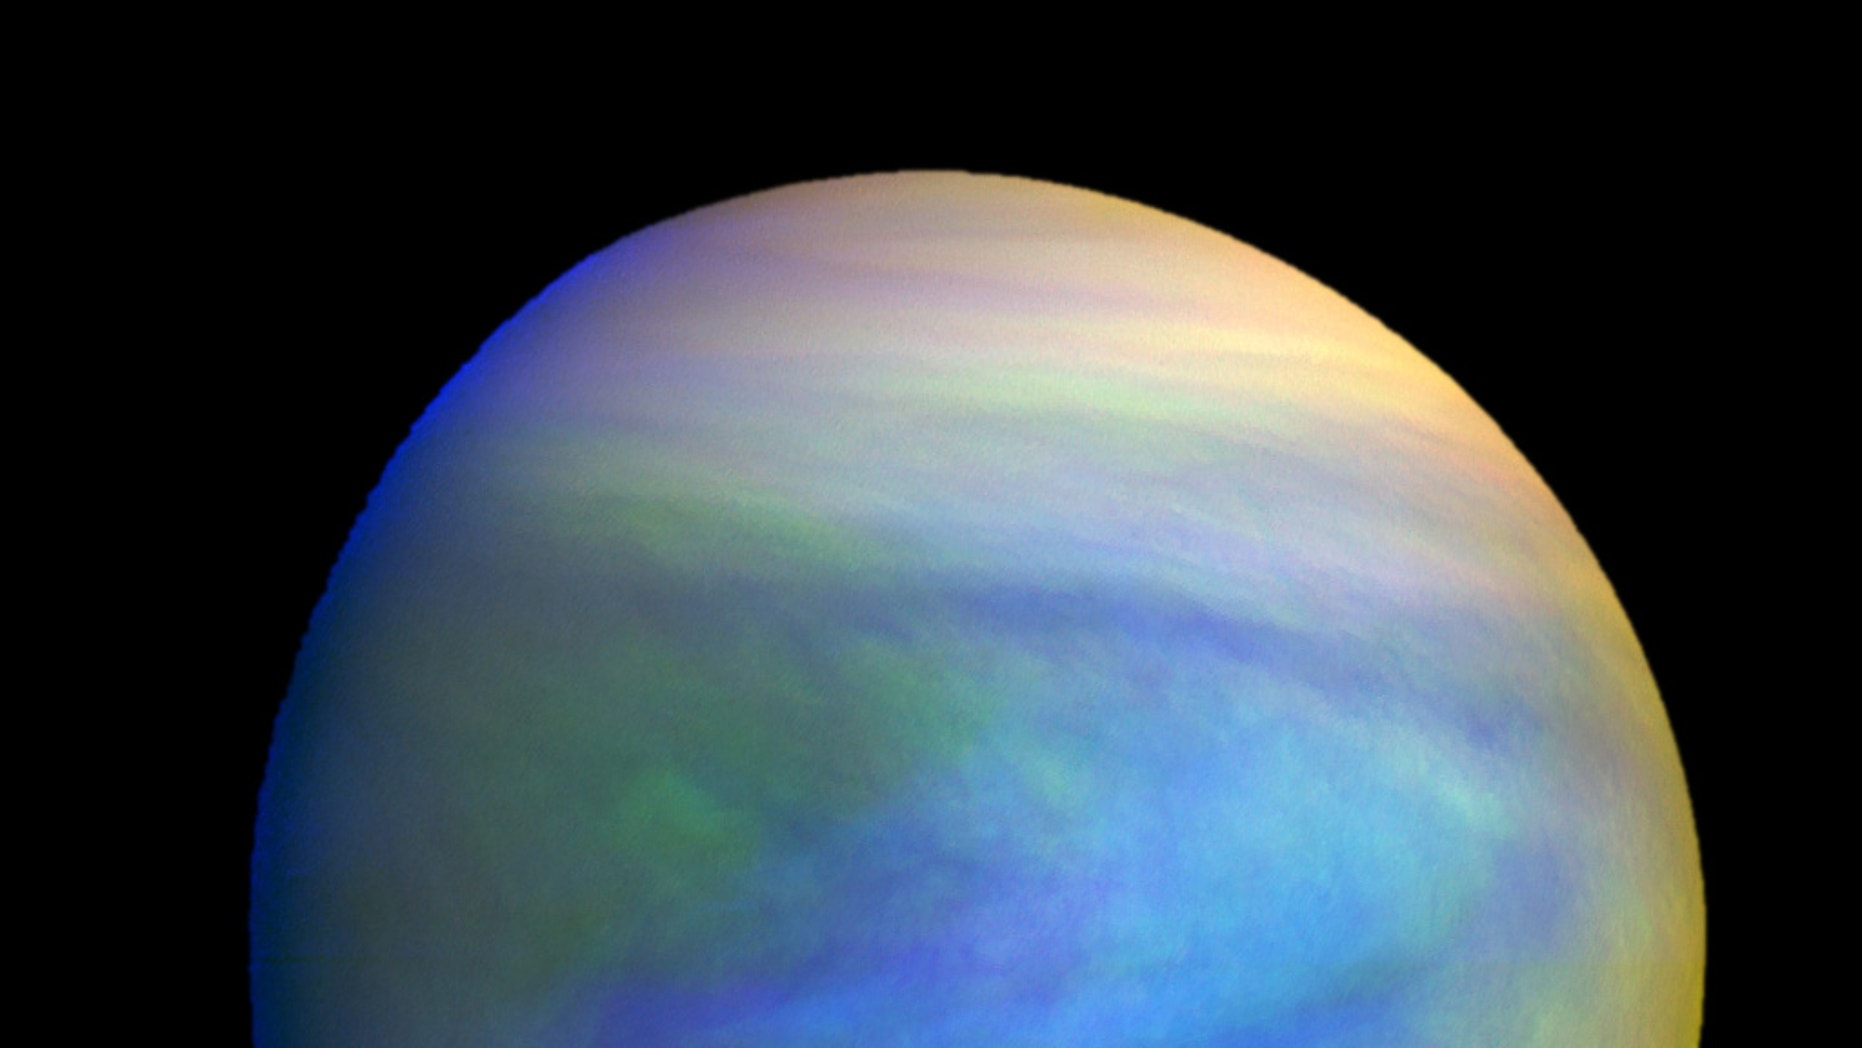 A composite image of Venus as seen by Japan's Akatsuki spacecraft. The clouds of Venus may provide an environment capable of supporting microbial life, some researchers say.